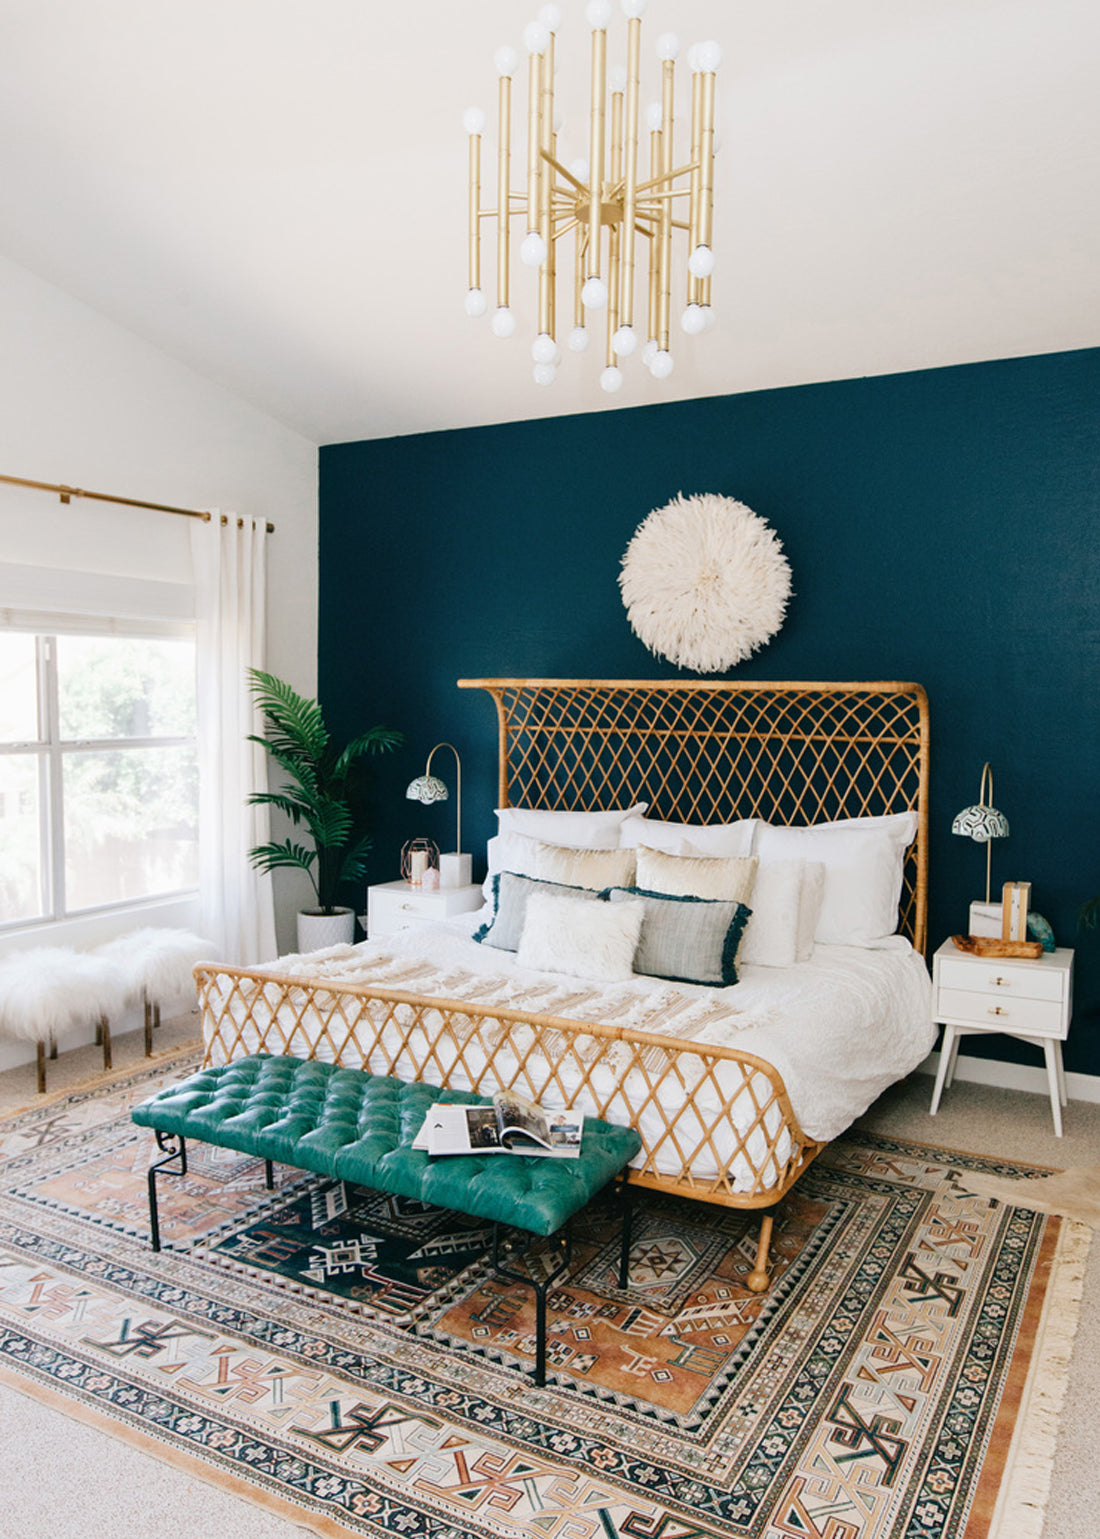 Deciding On A Color Palette For Your Home Can Be One Of The Most Tedious Things Sometimes Inspiration Comes From Beautiful Jewel Toned Couch That You